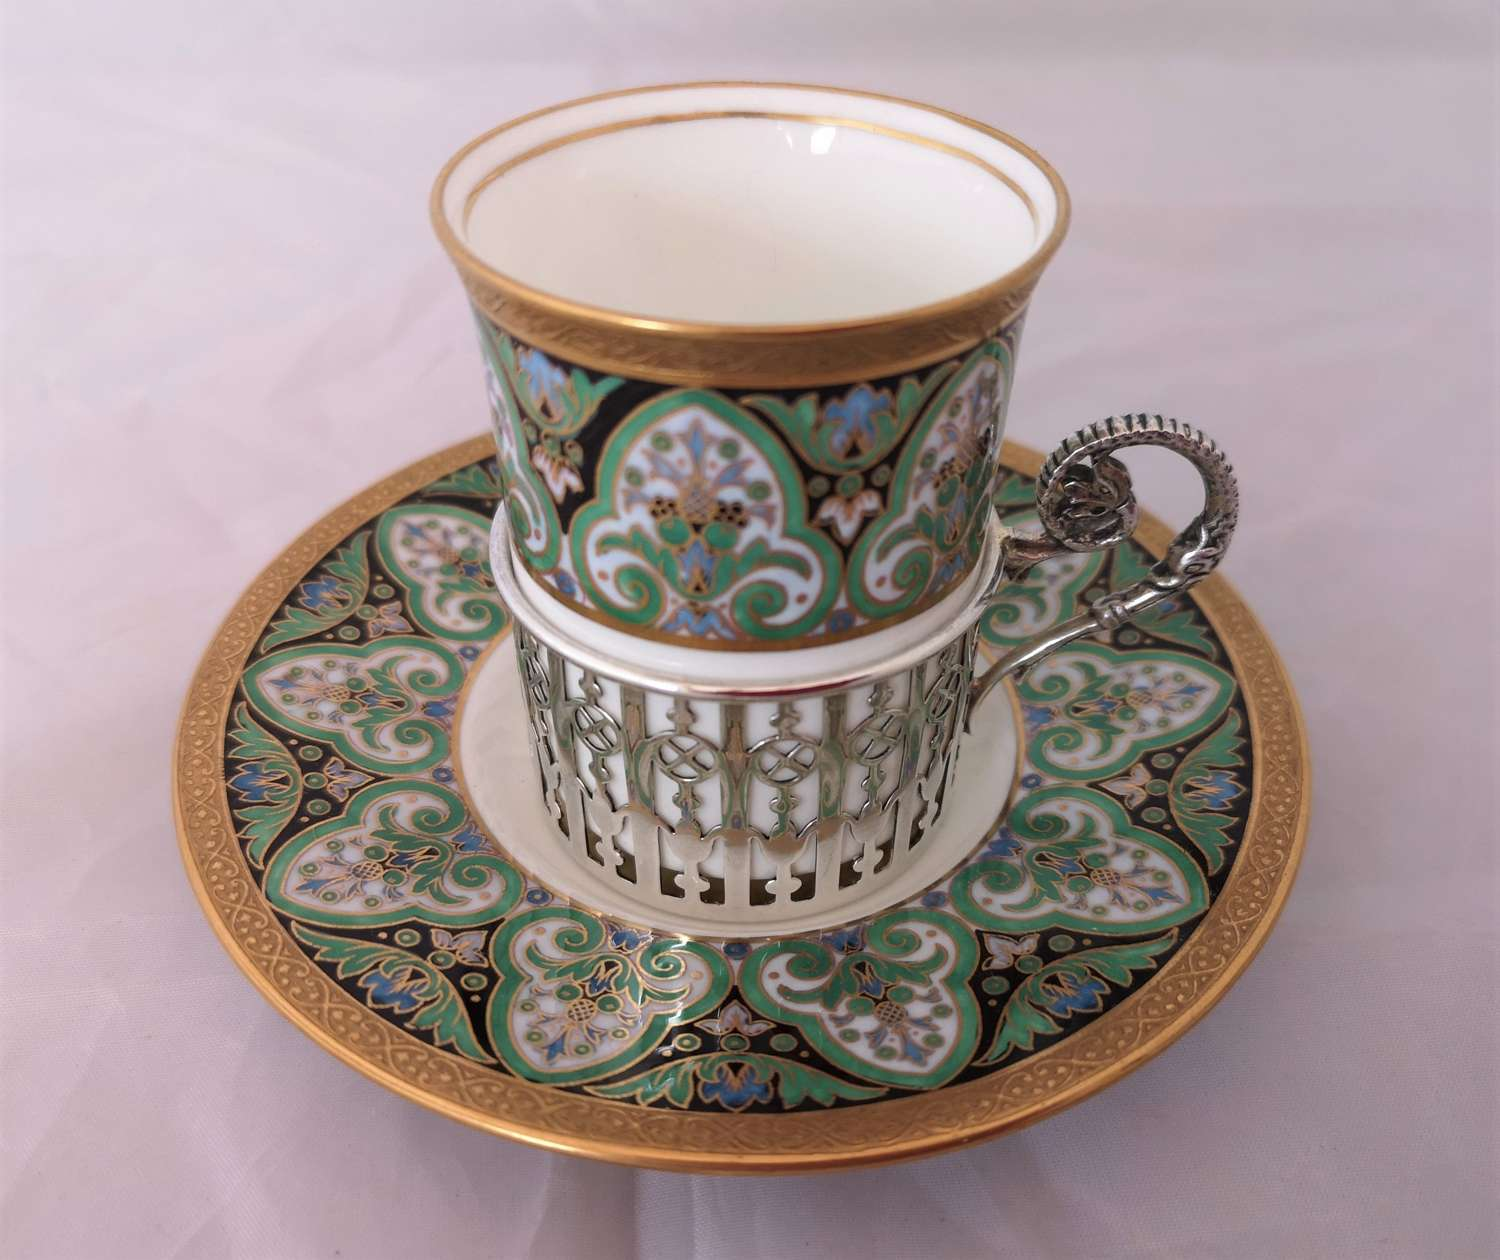 Antique Wedgwood cup and saucer silver holder